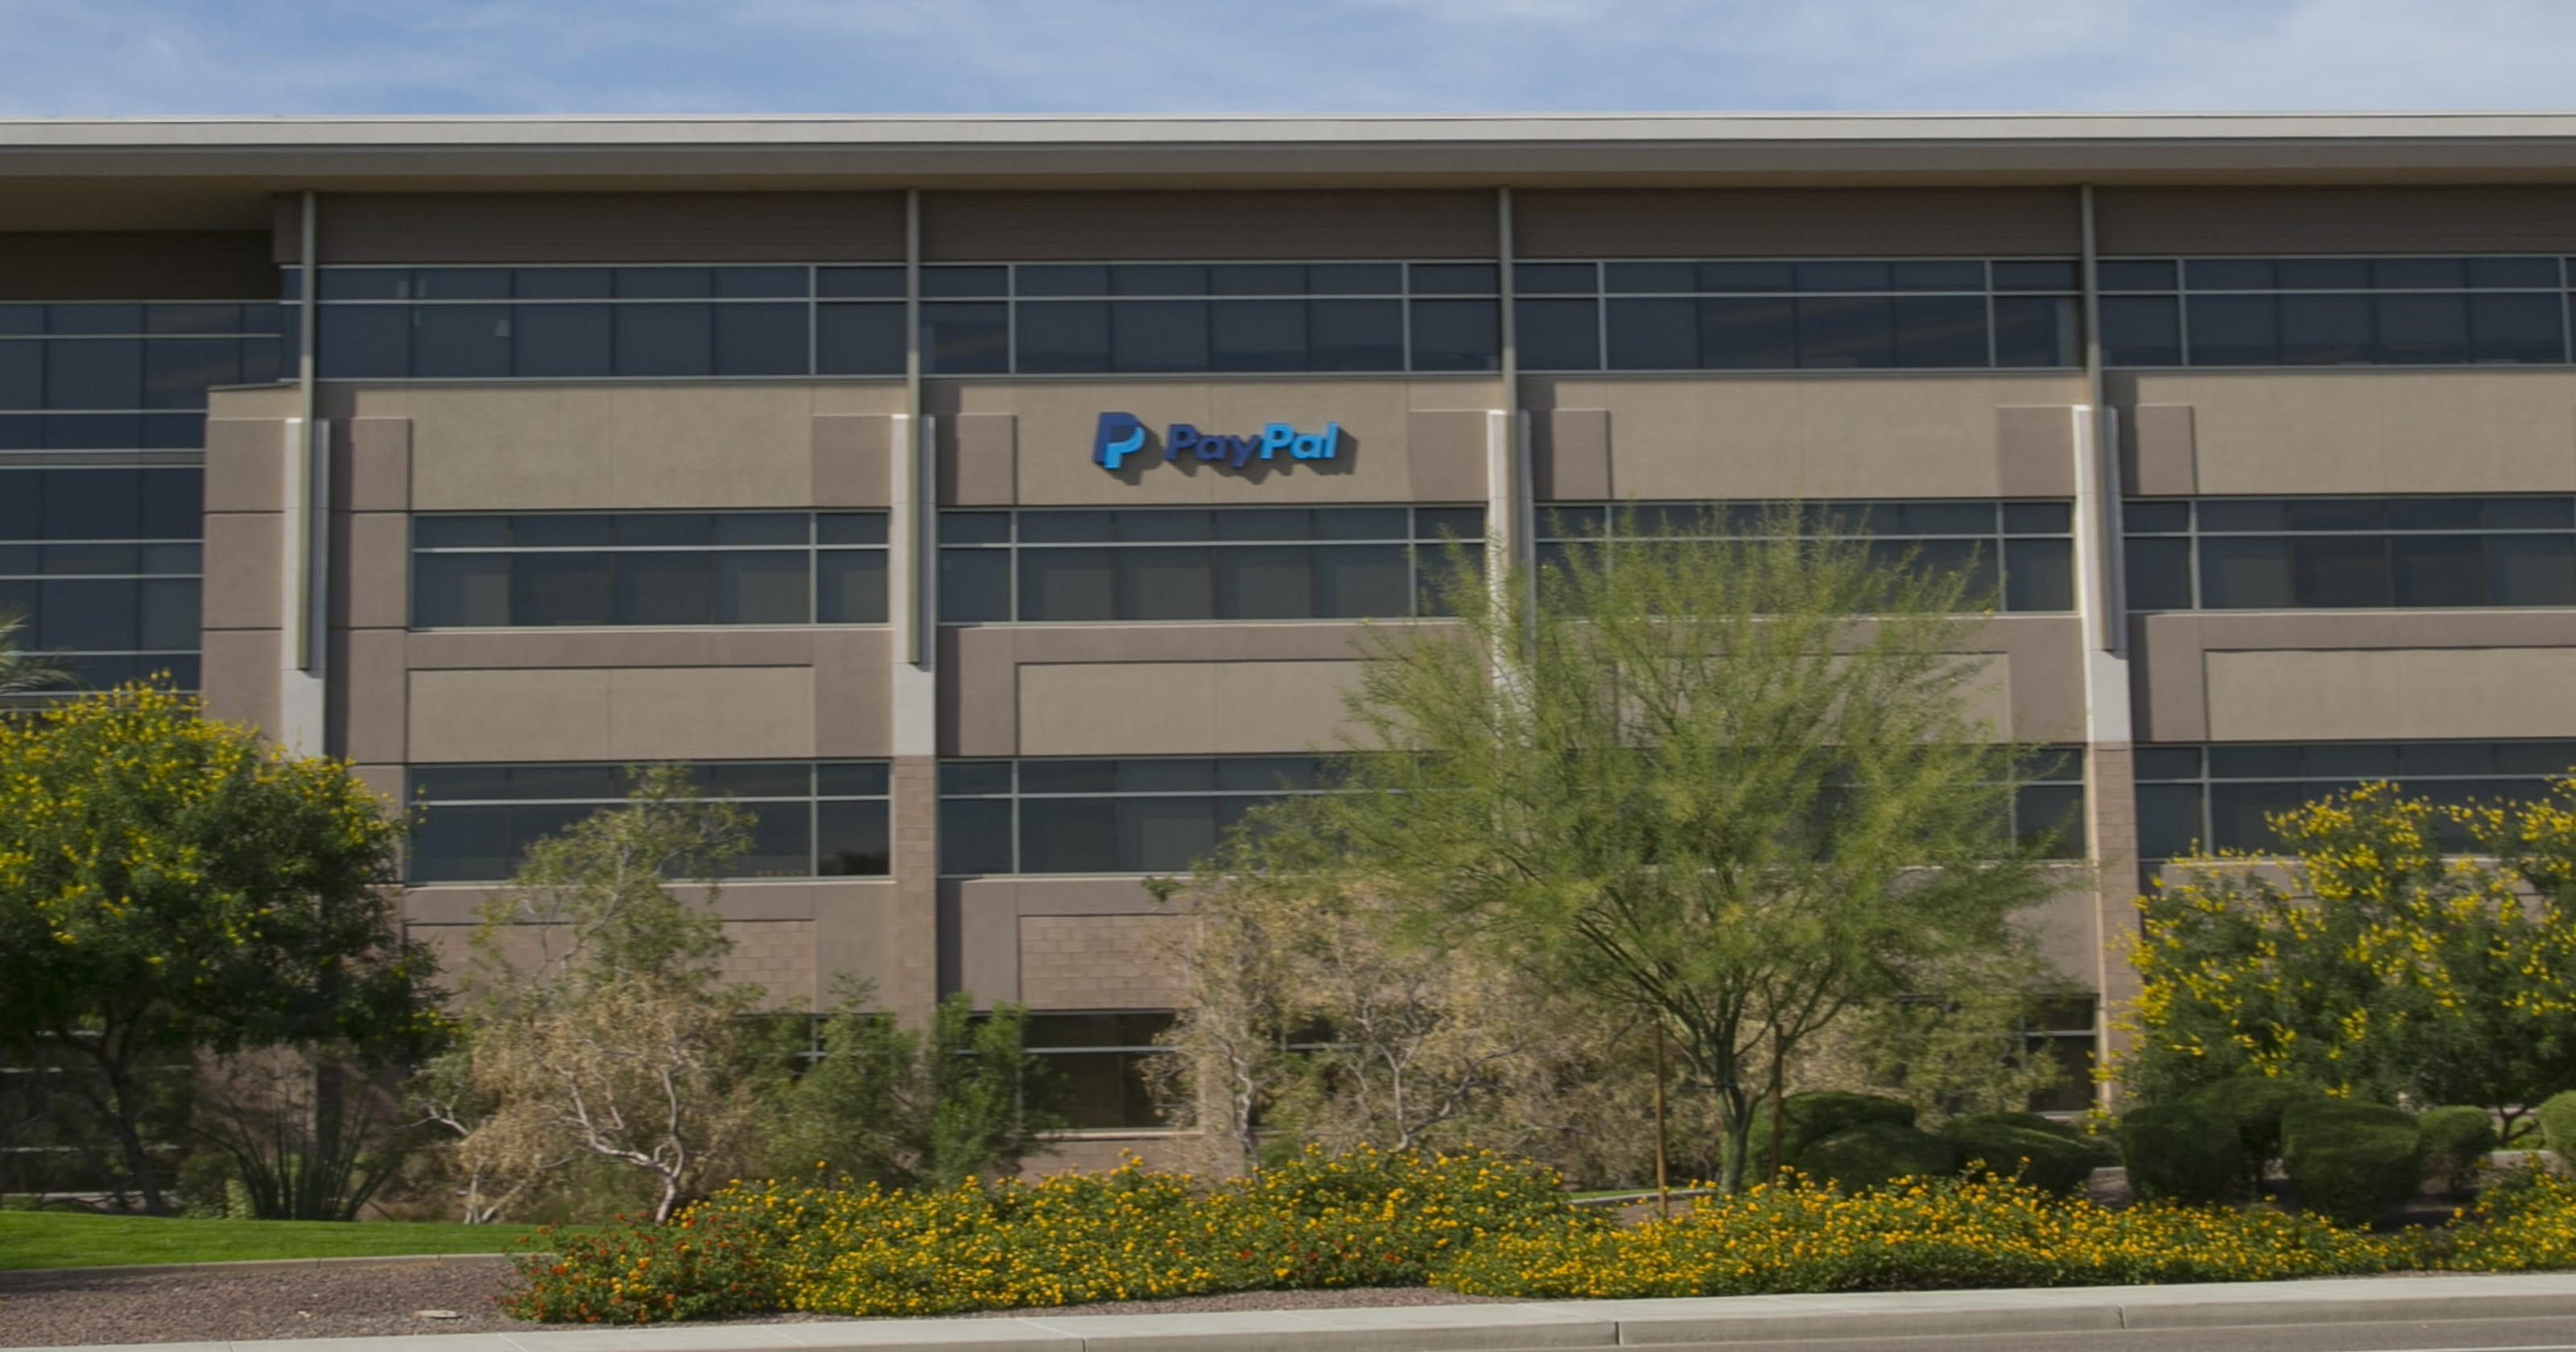 PayPal laying off some employees at Chandler office